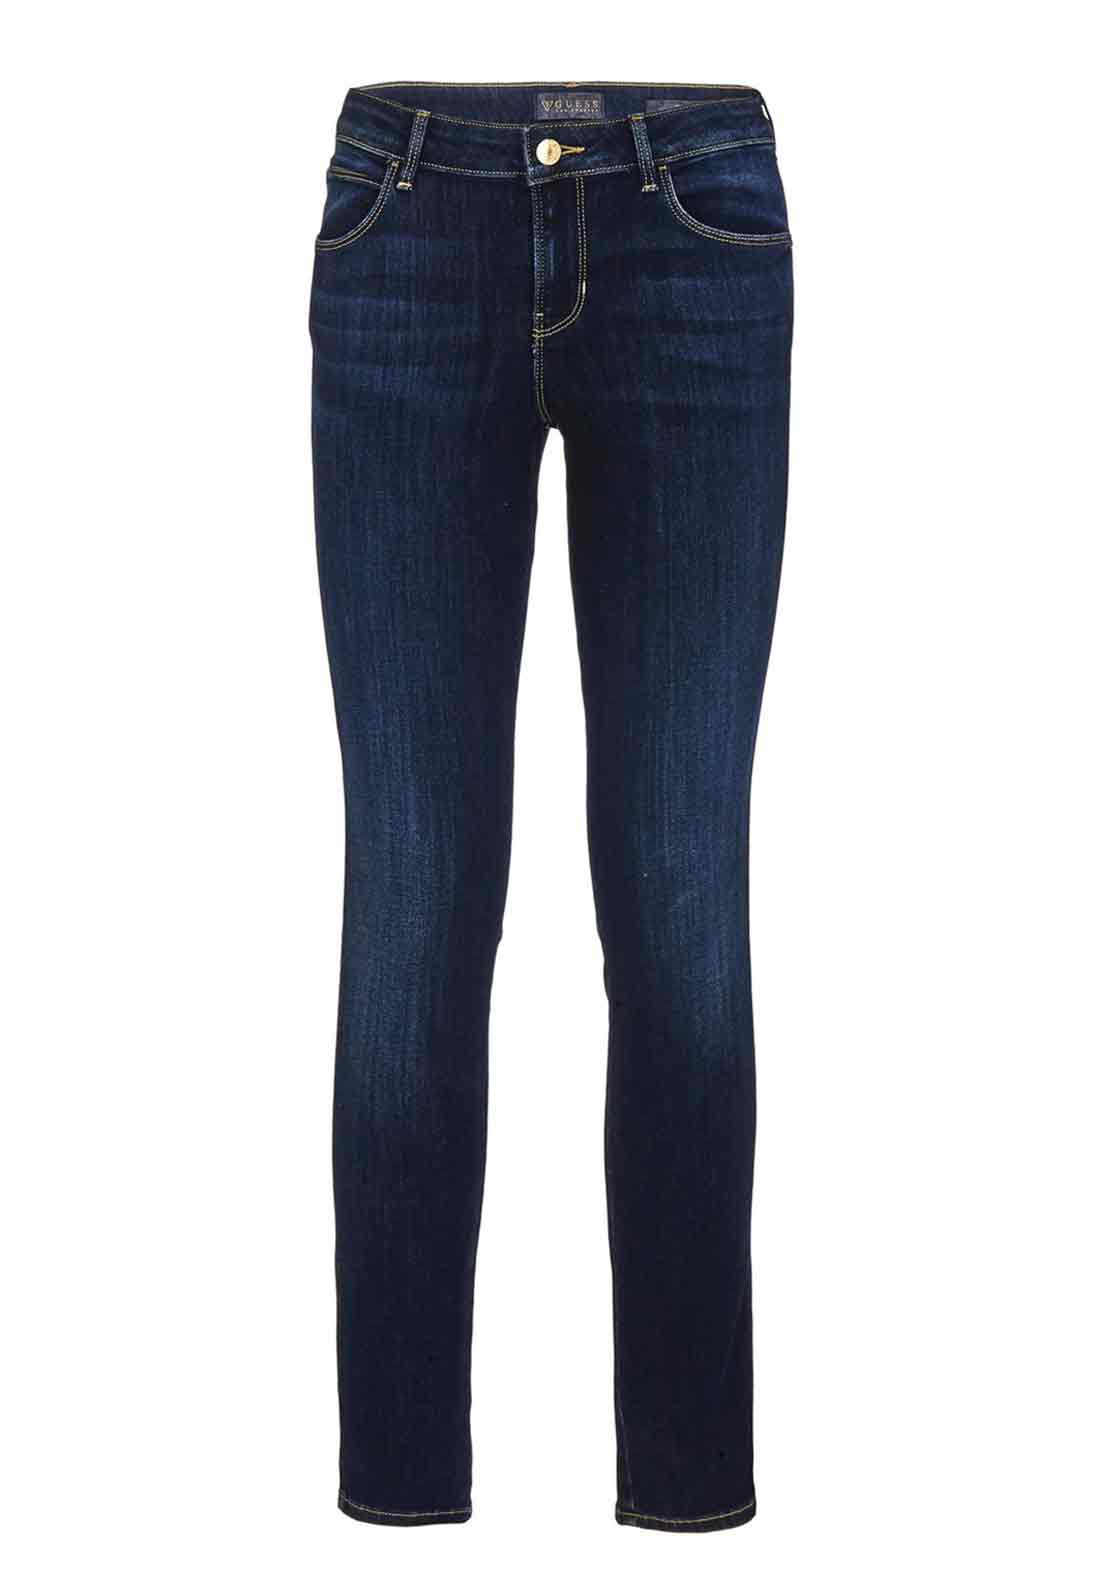 Guess Womens Curve X Skinny Jeans, Dark Denim